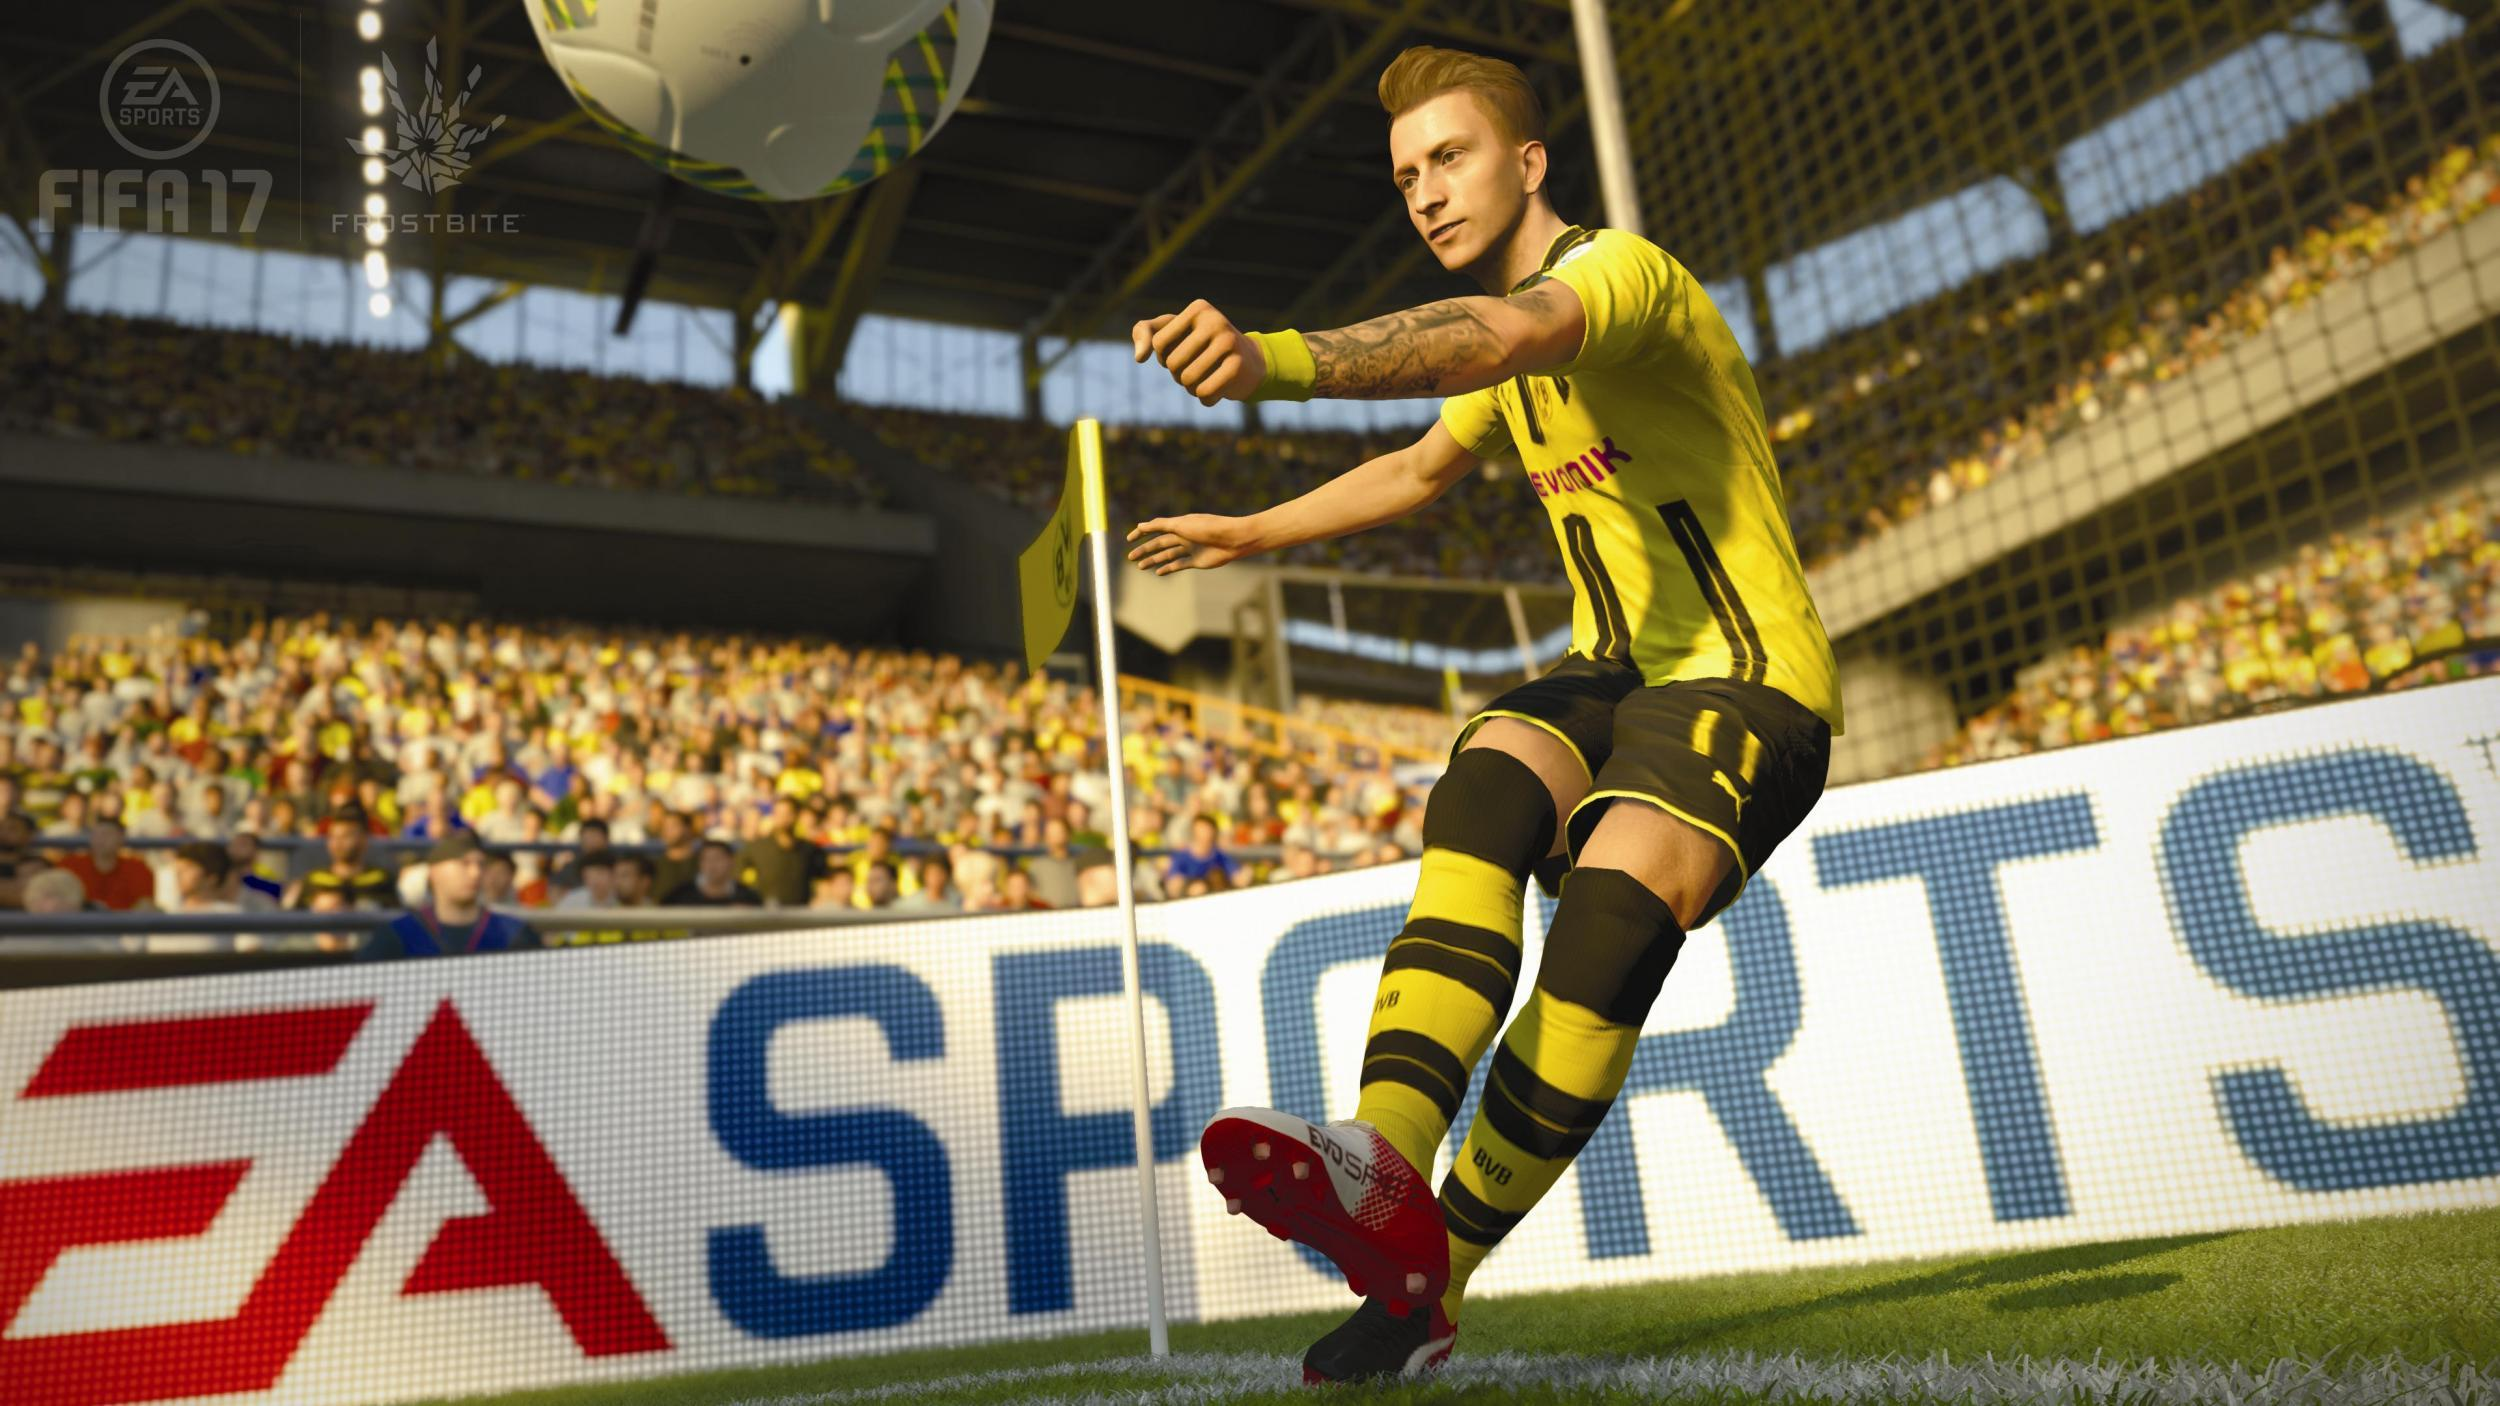 Ea sports server not available fifa 10 play fifa 97 online for free